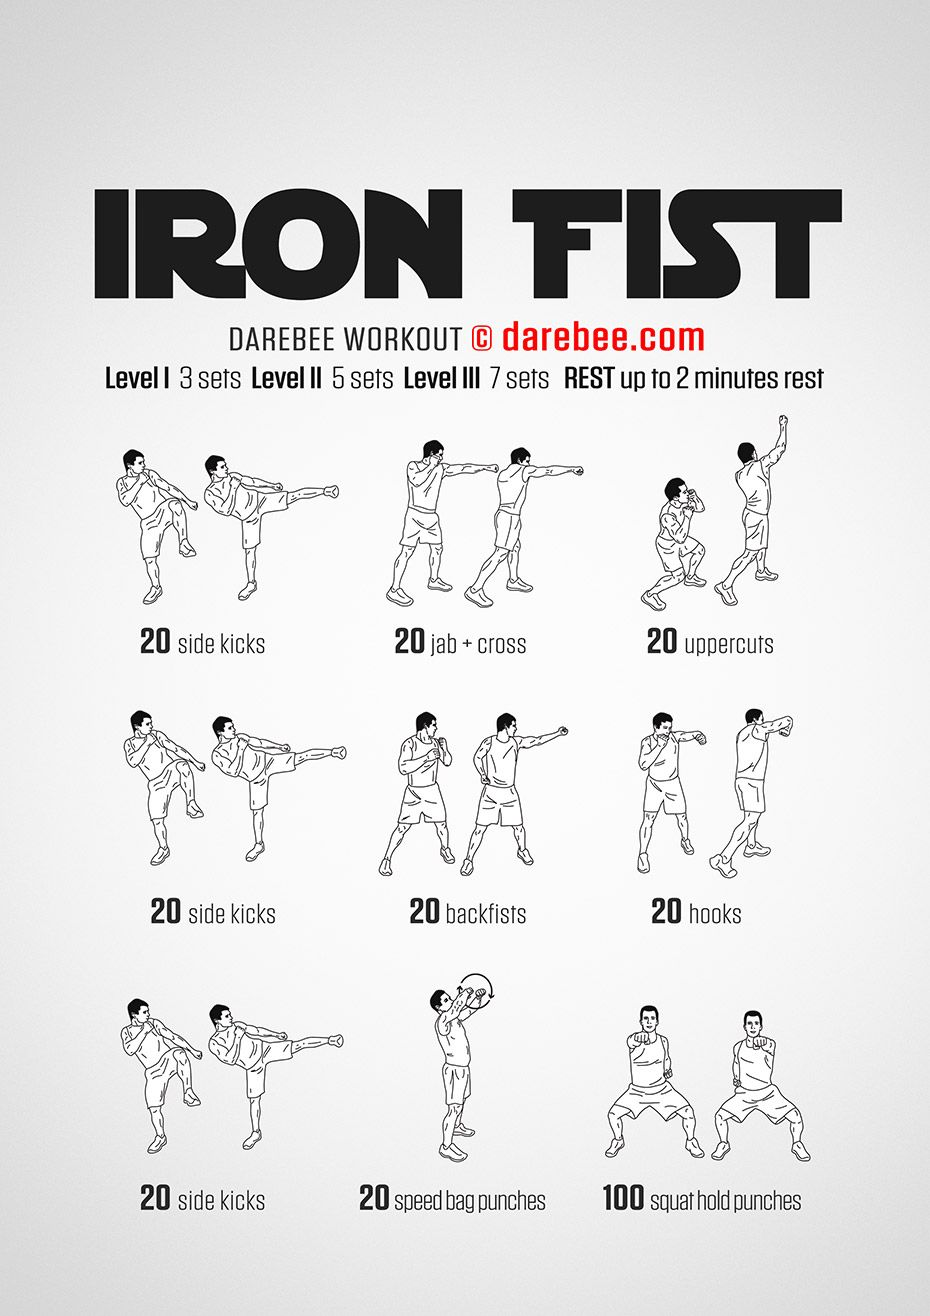 Iron fist workout sharpen up your combat skills hone your